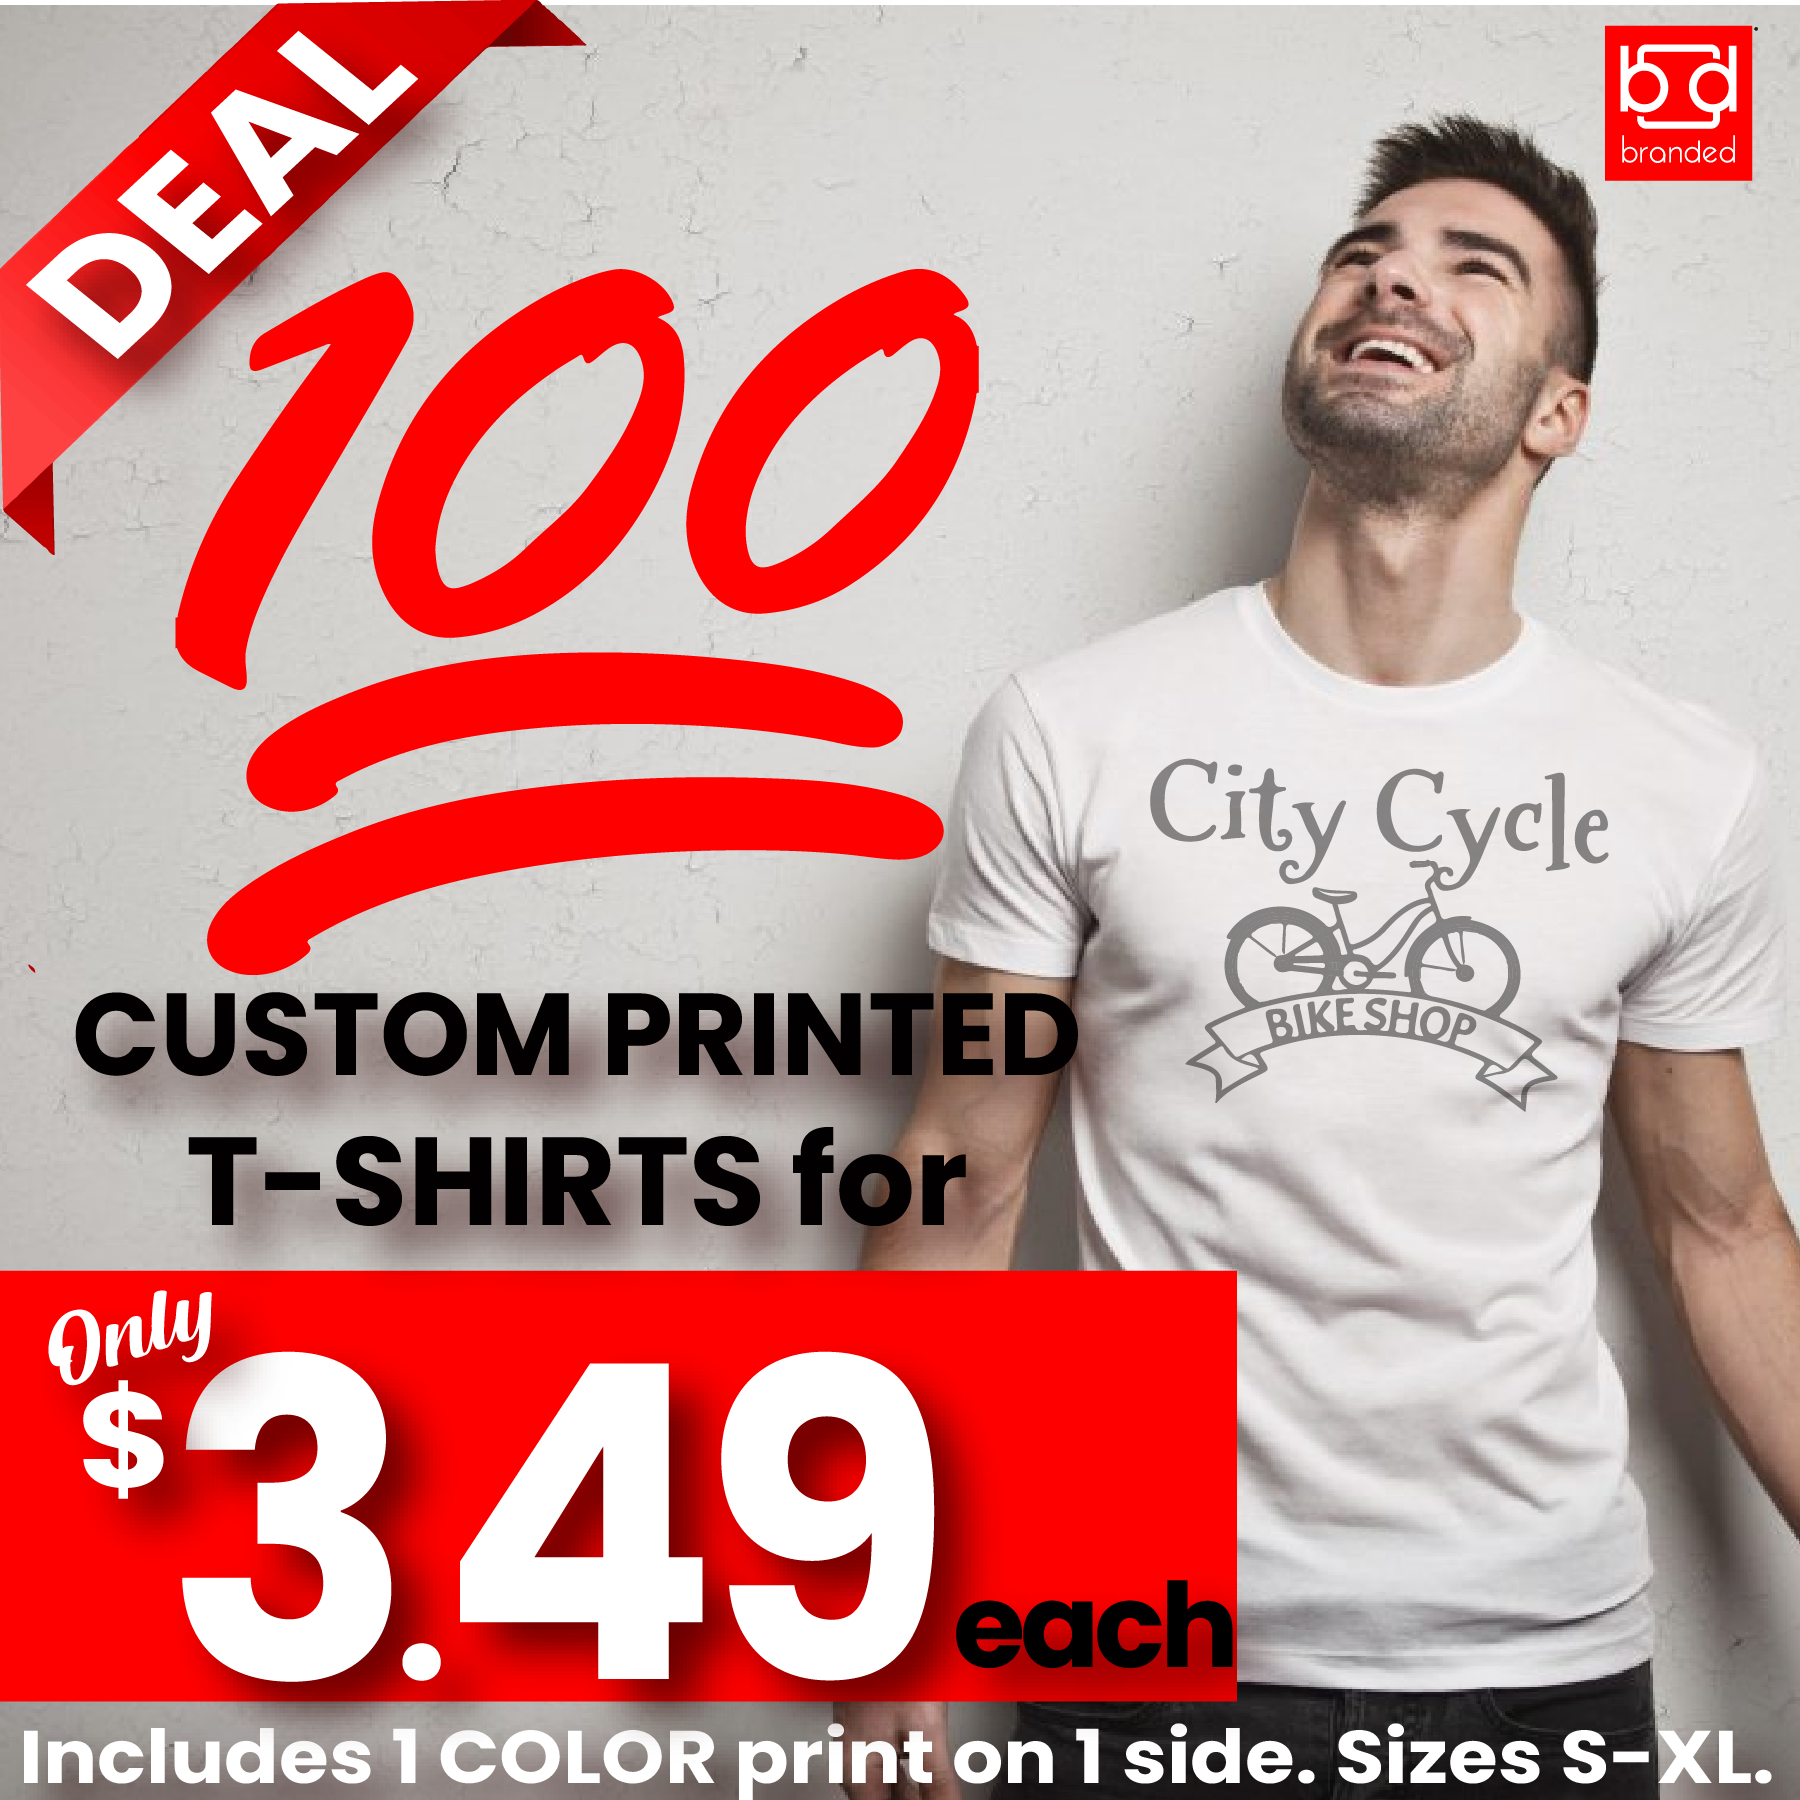 100 T-shirts for $349 from Branded-01